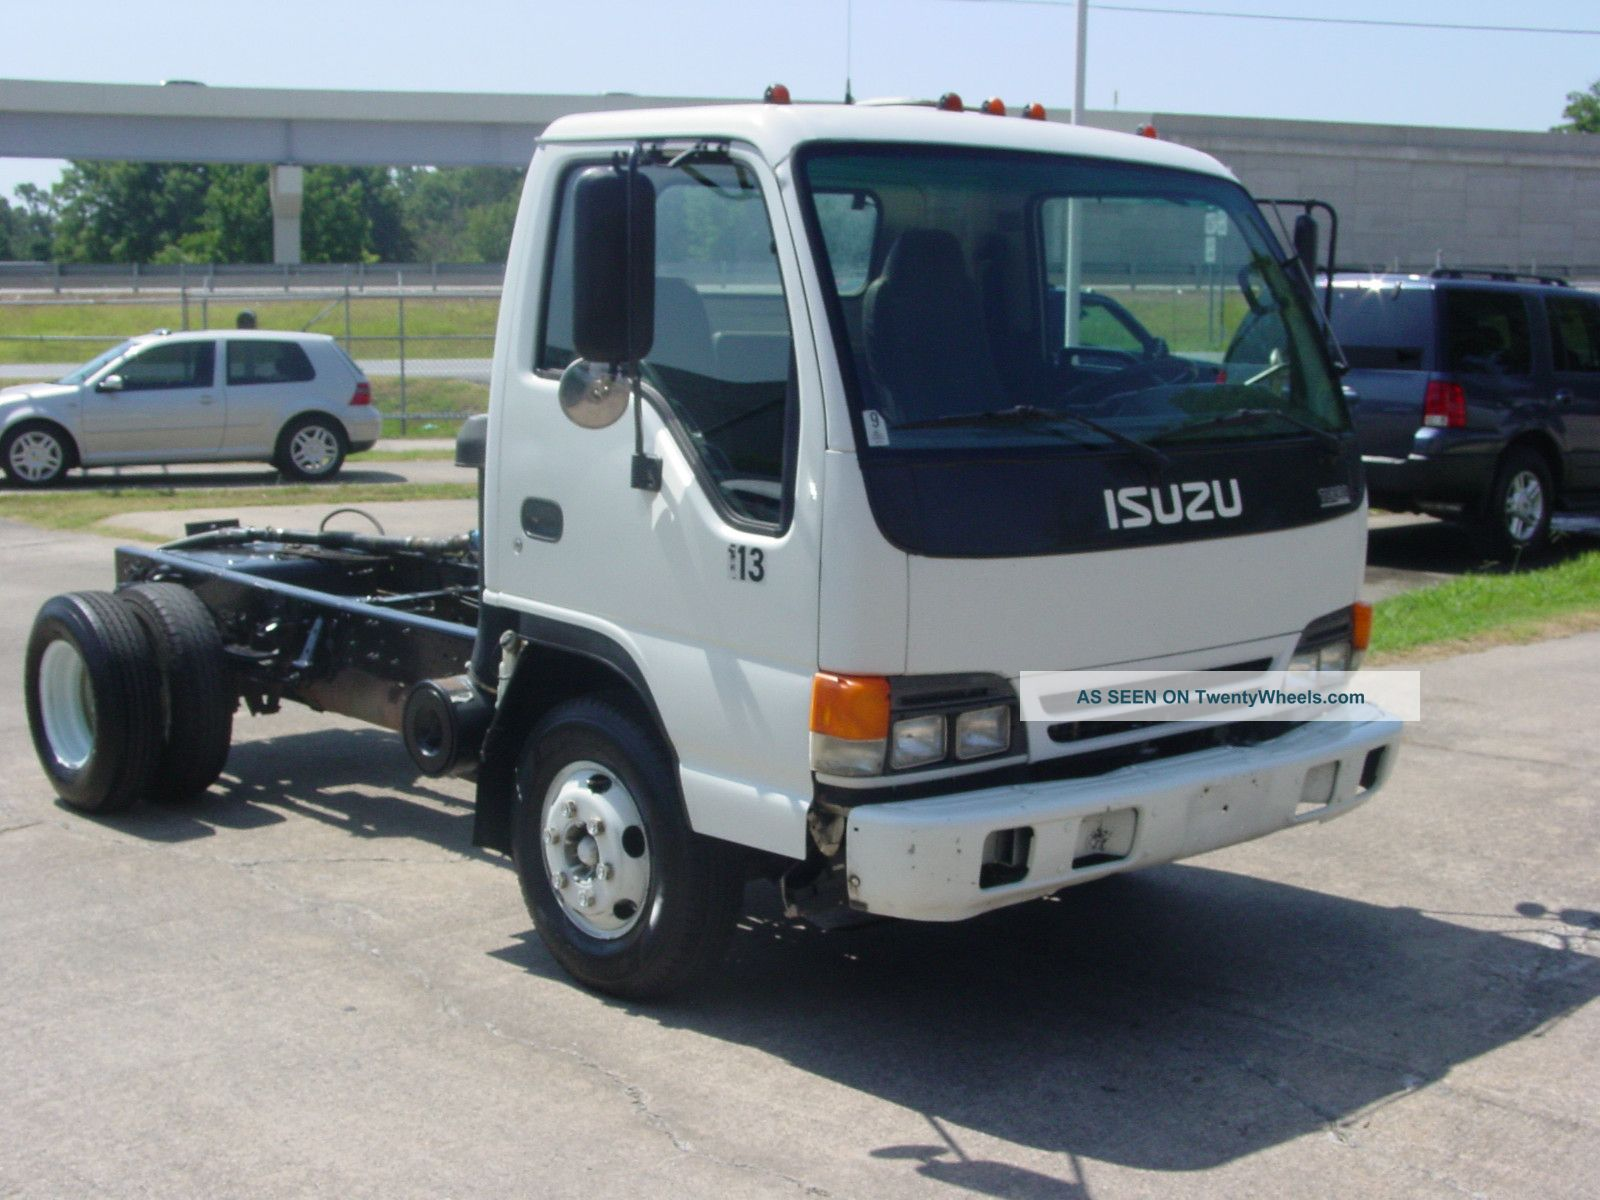 9458 2001 isuzu npr in addition Download also Line Boring also Ronny Ceusters 1 likewise 10787 2006 kenworth t800. on semi truck cranes